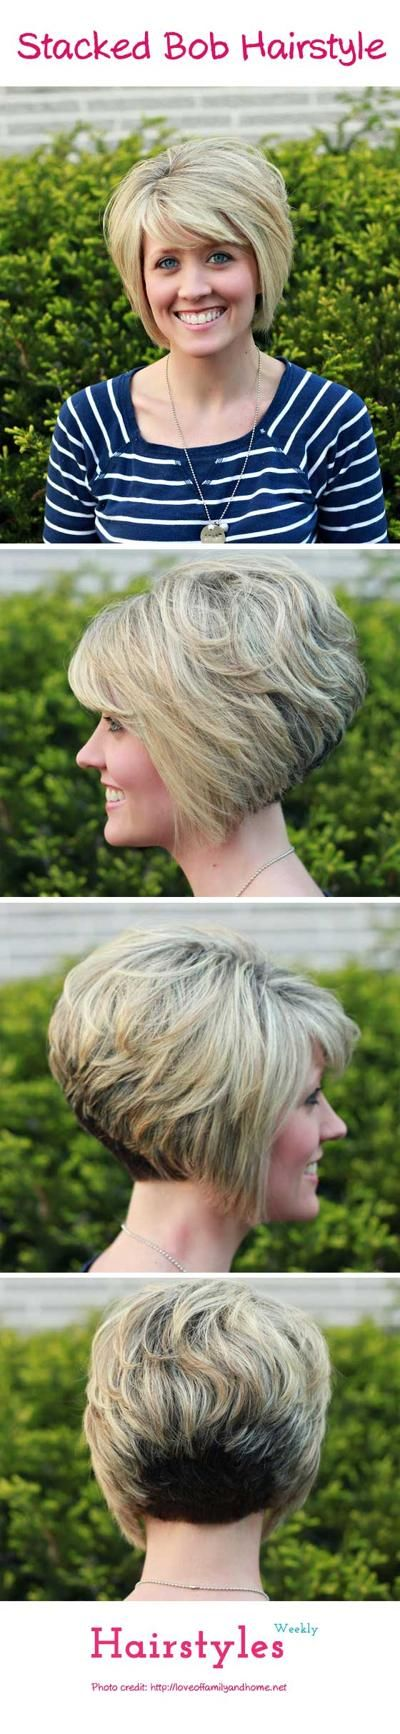 best stacked bob hairstyle for